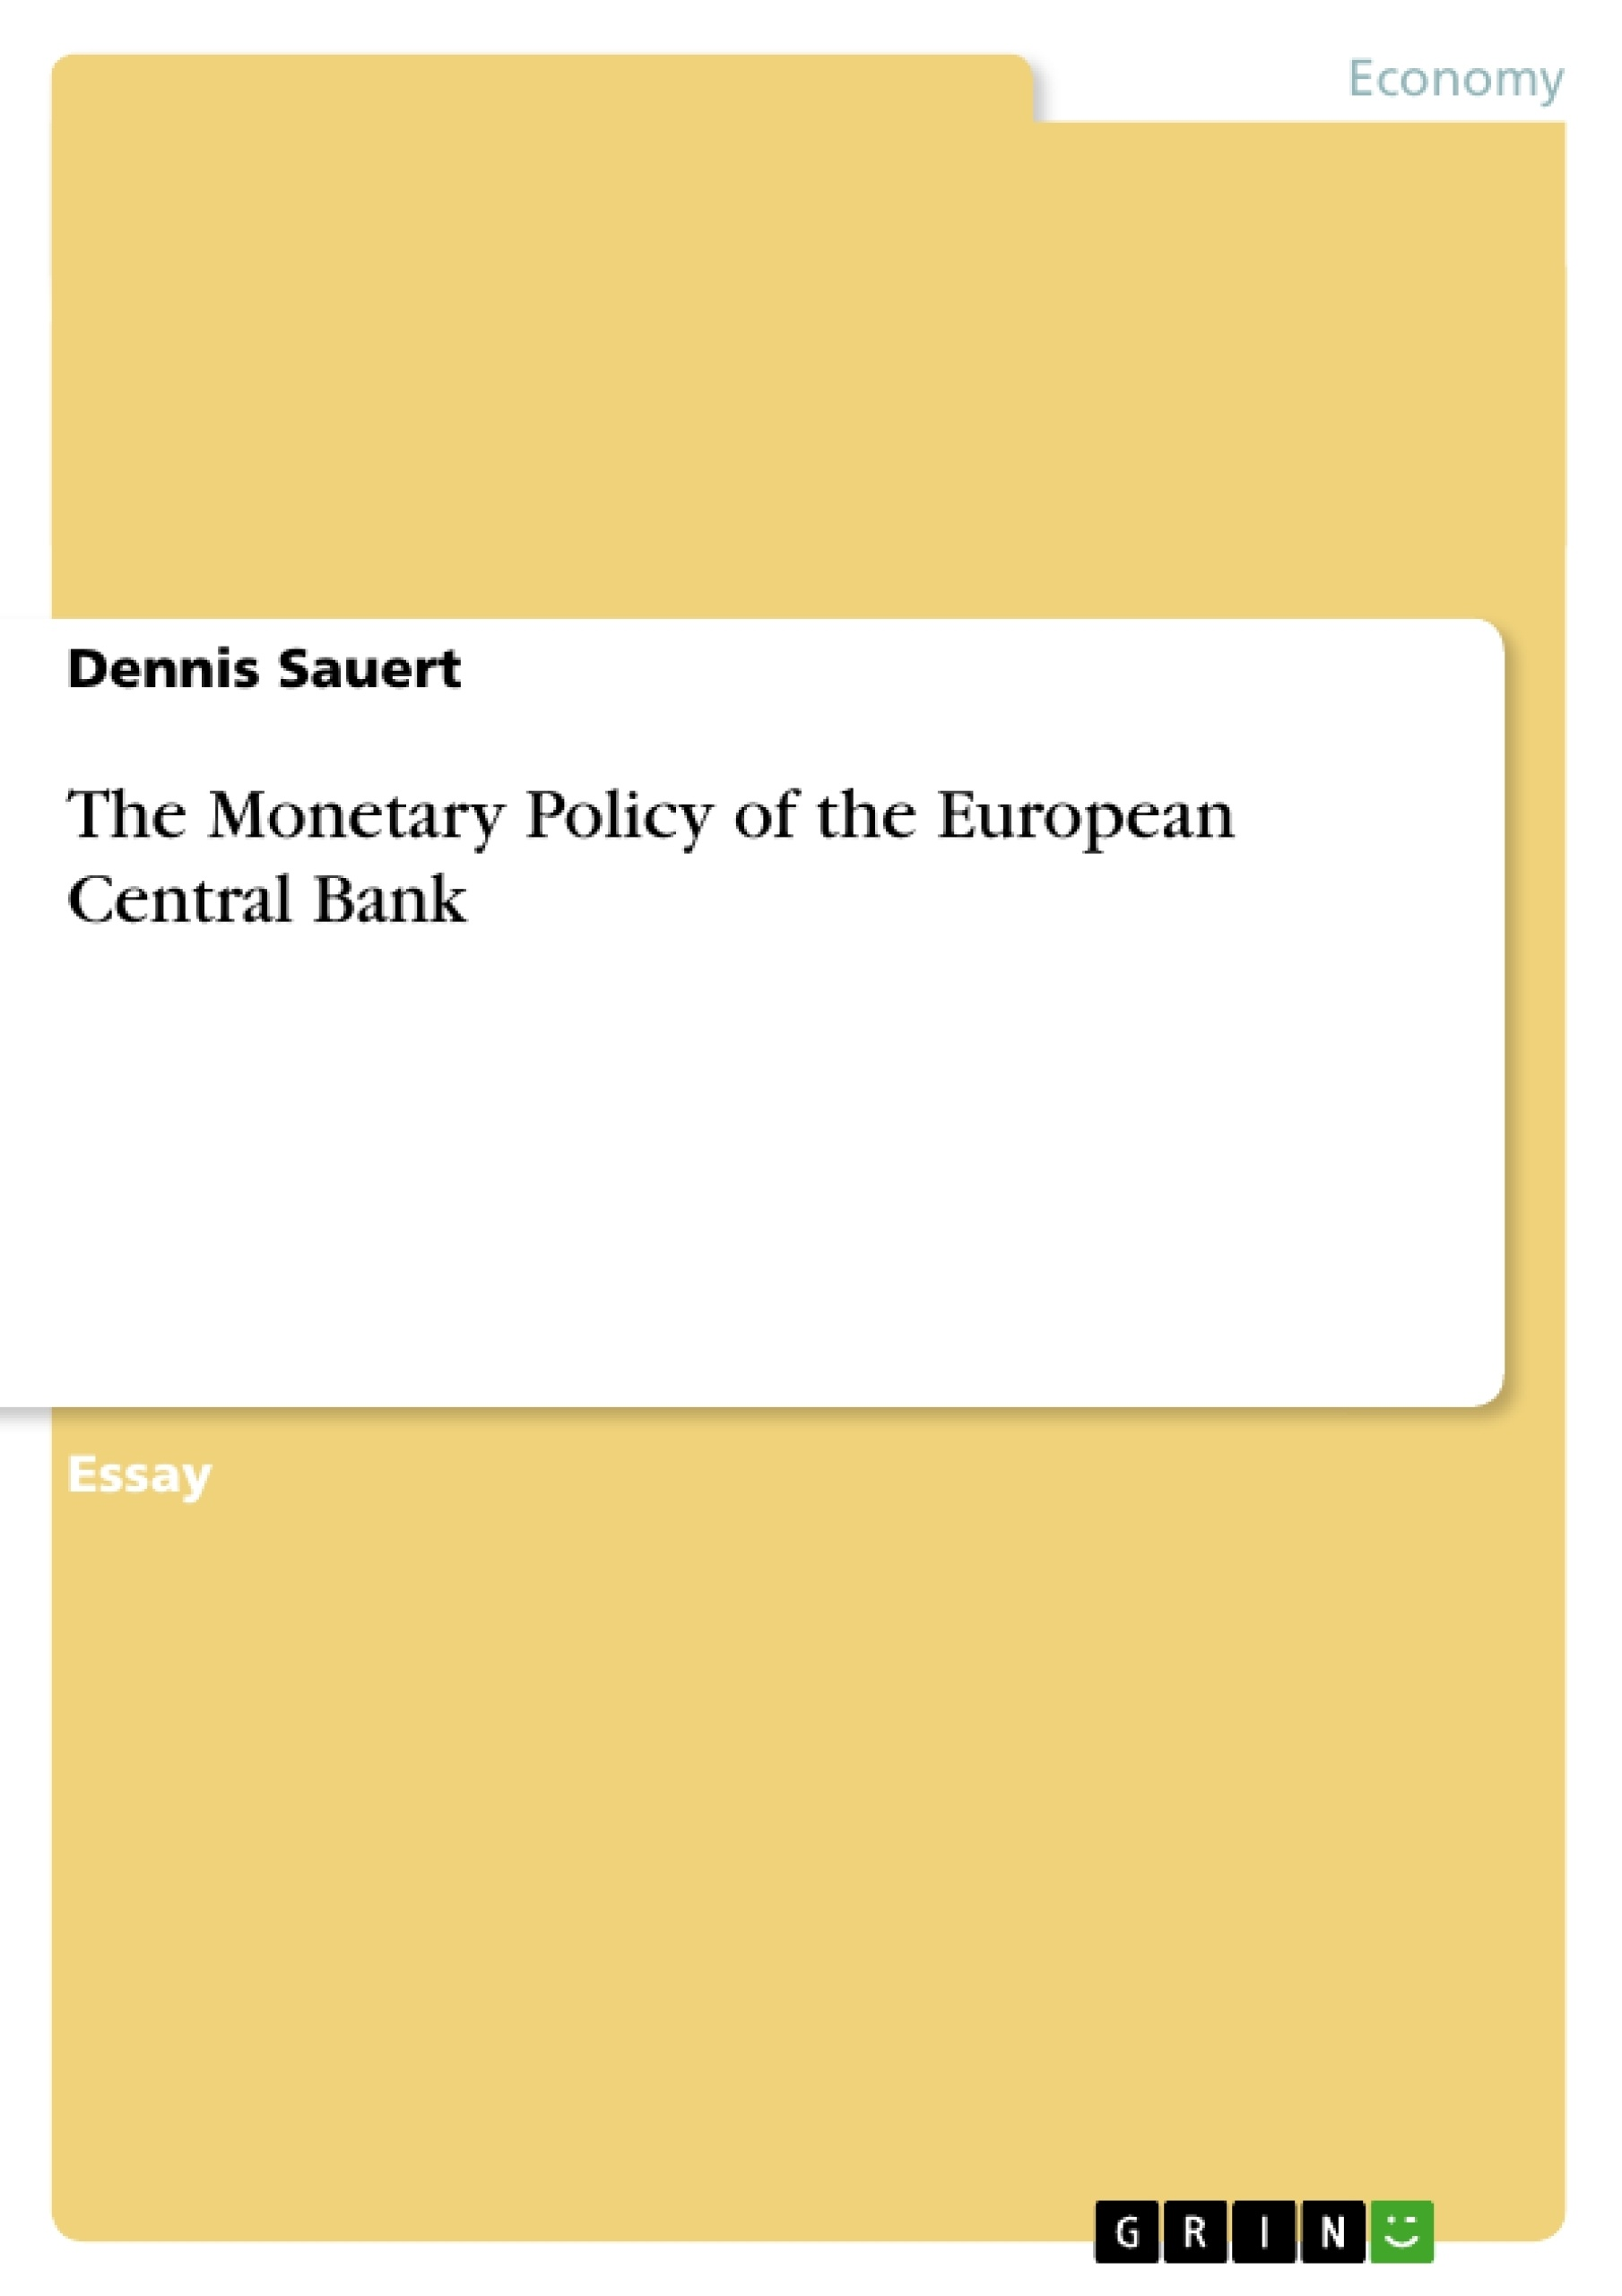 Title: The Monetary Policy of the European Central Bank